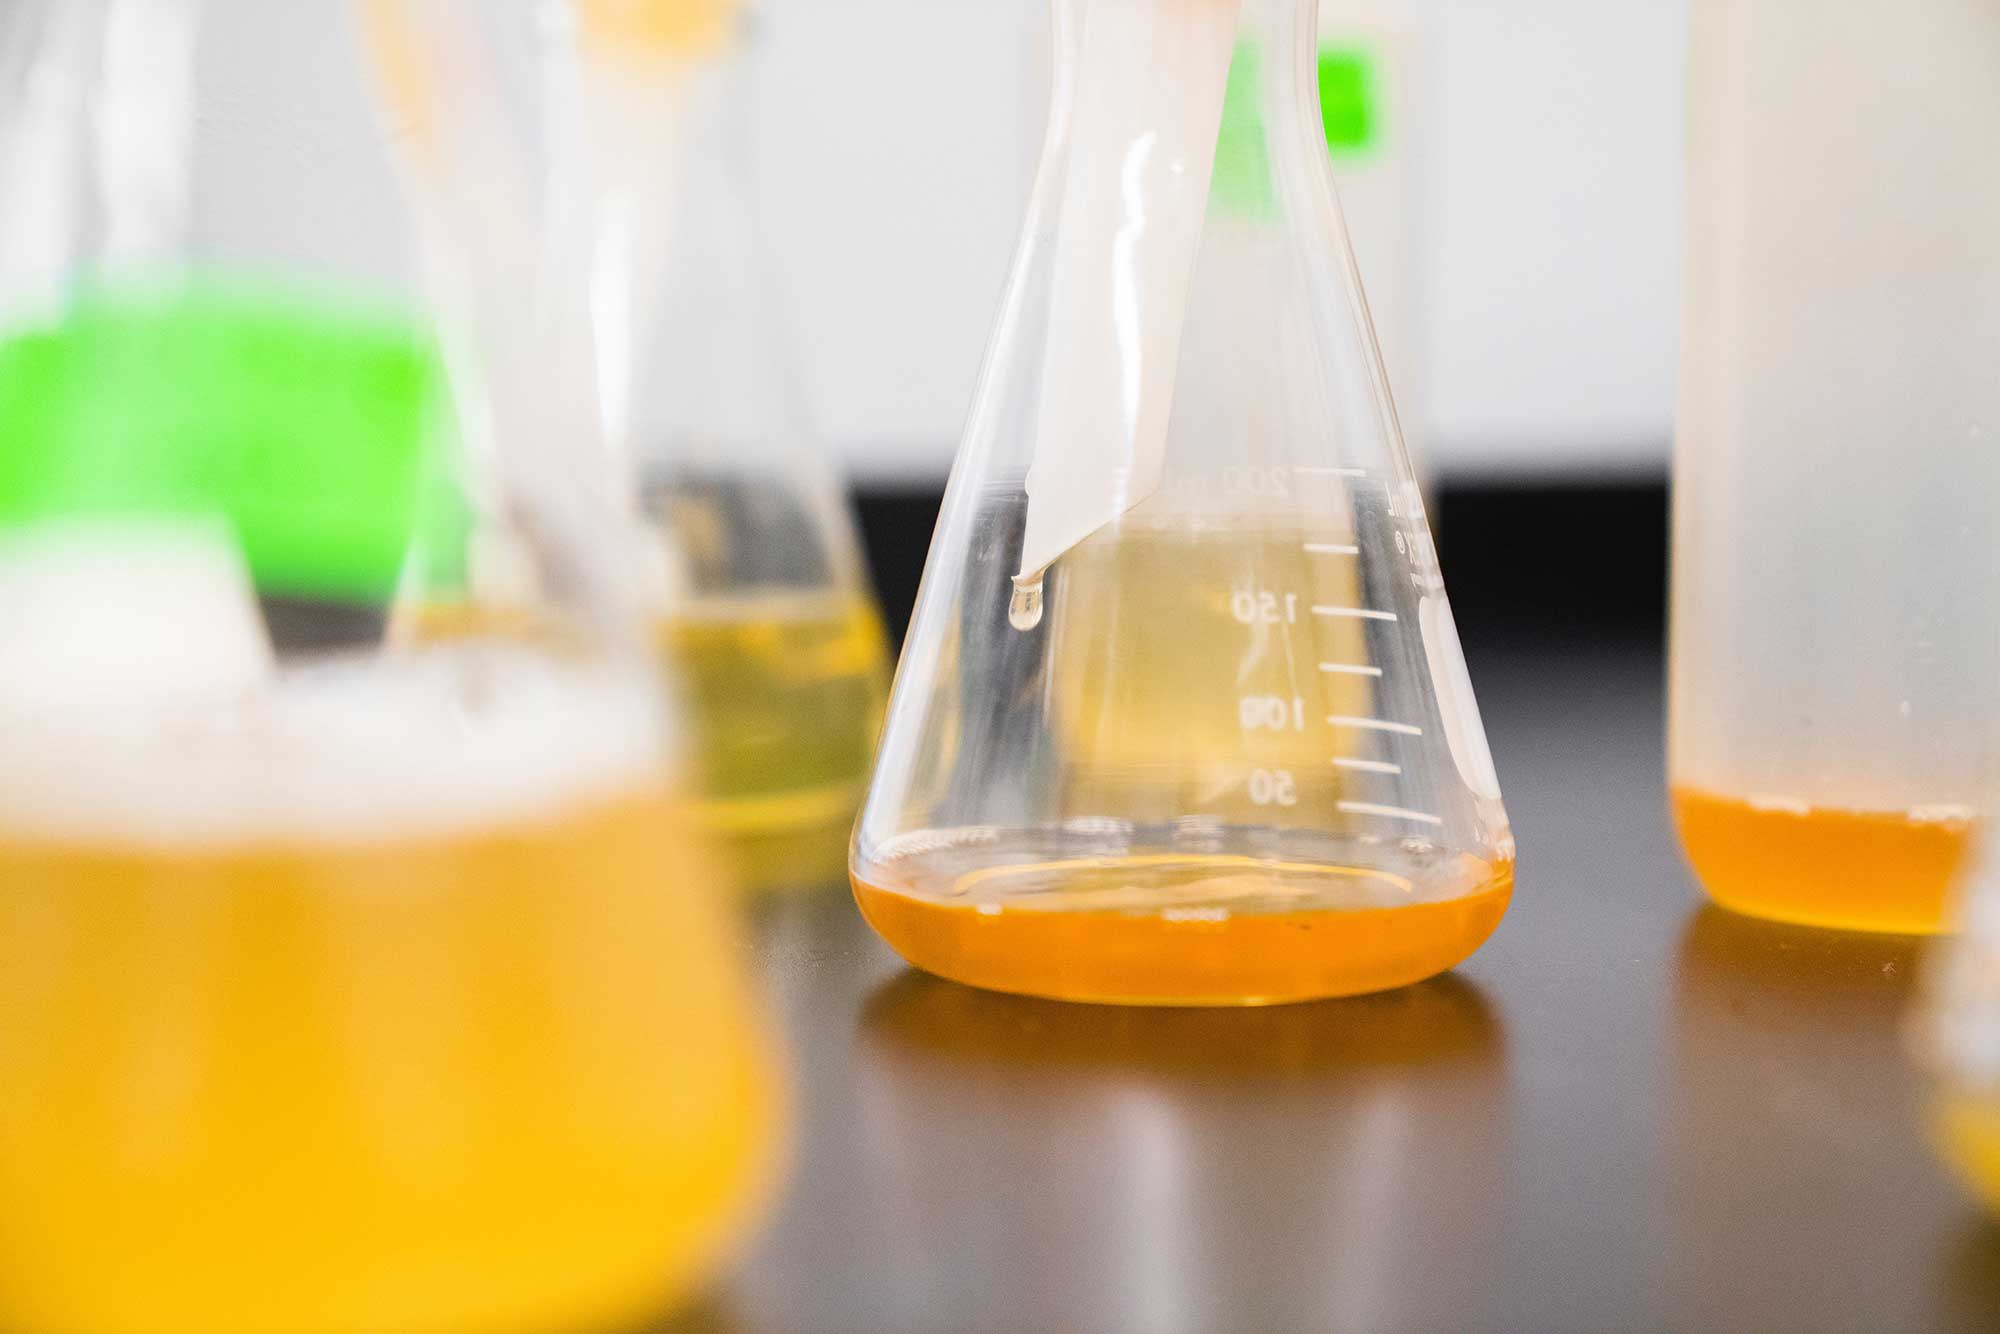 Hydrocarbon Solvents Market Estimation Introducing Future Opportunities with Highest Growth with a Cagr Of 4.6% By 2031